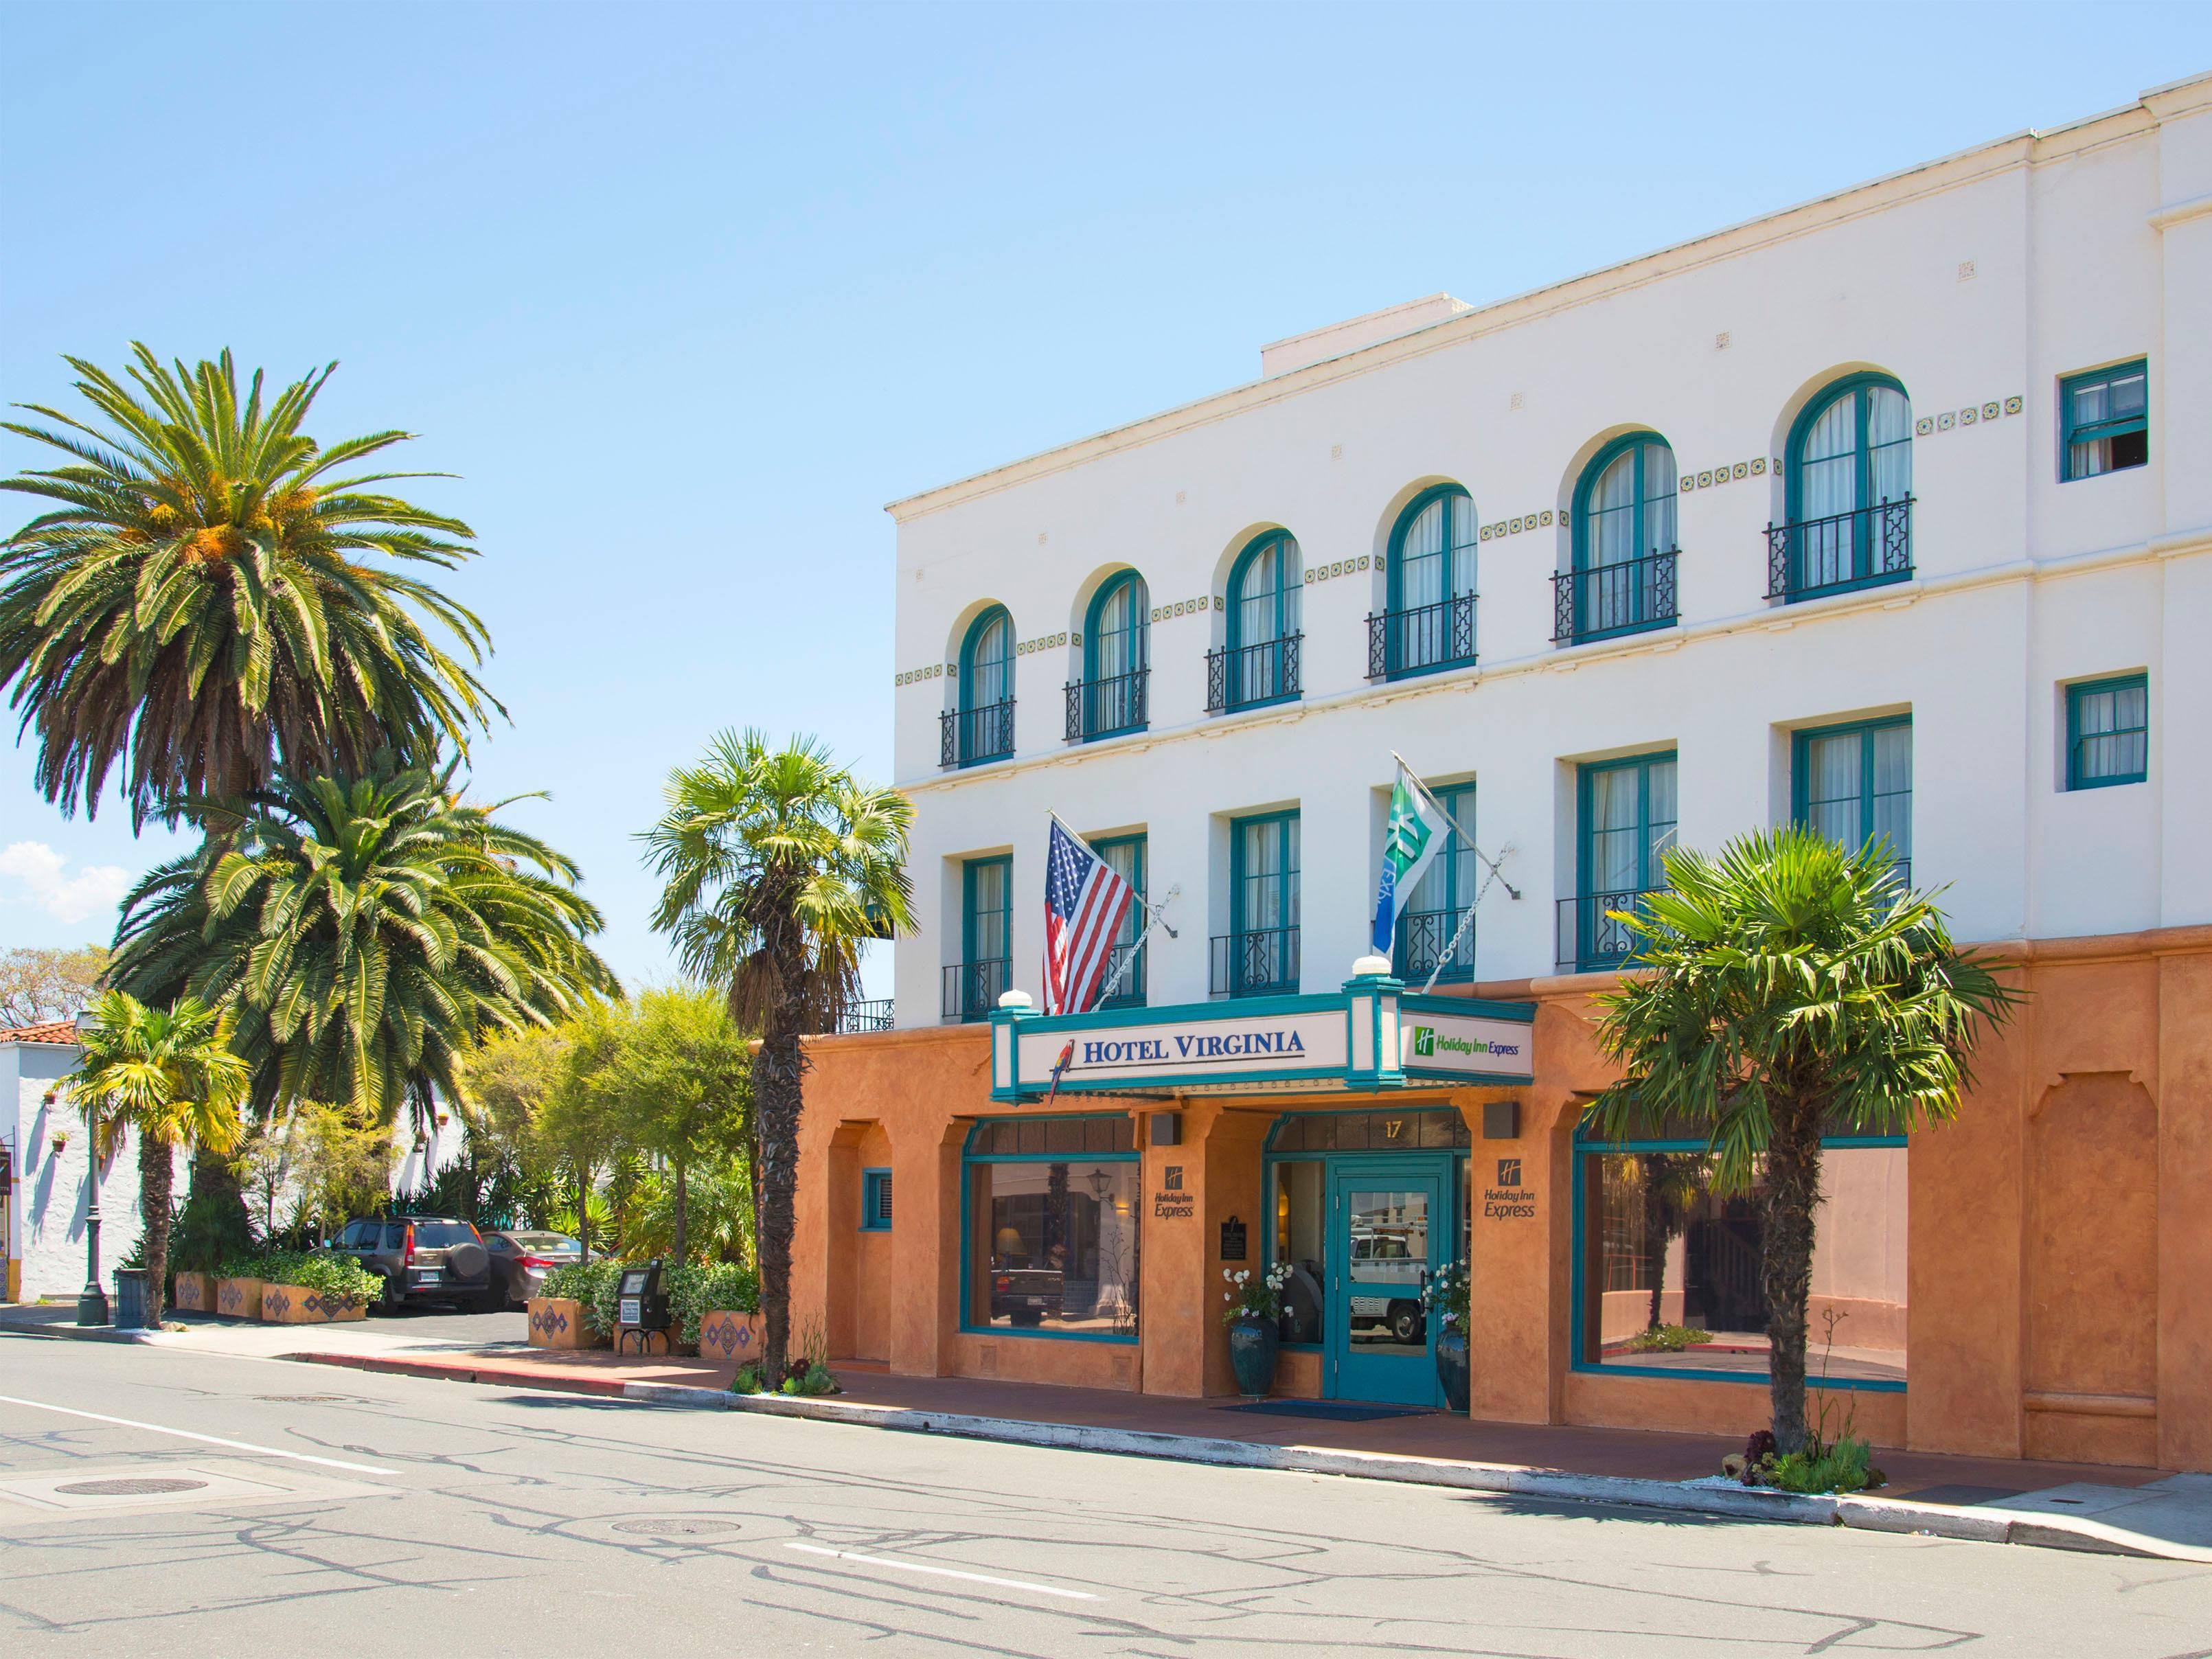 We're steps from Santa Barbara's famed State St.. Convenient!